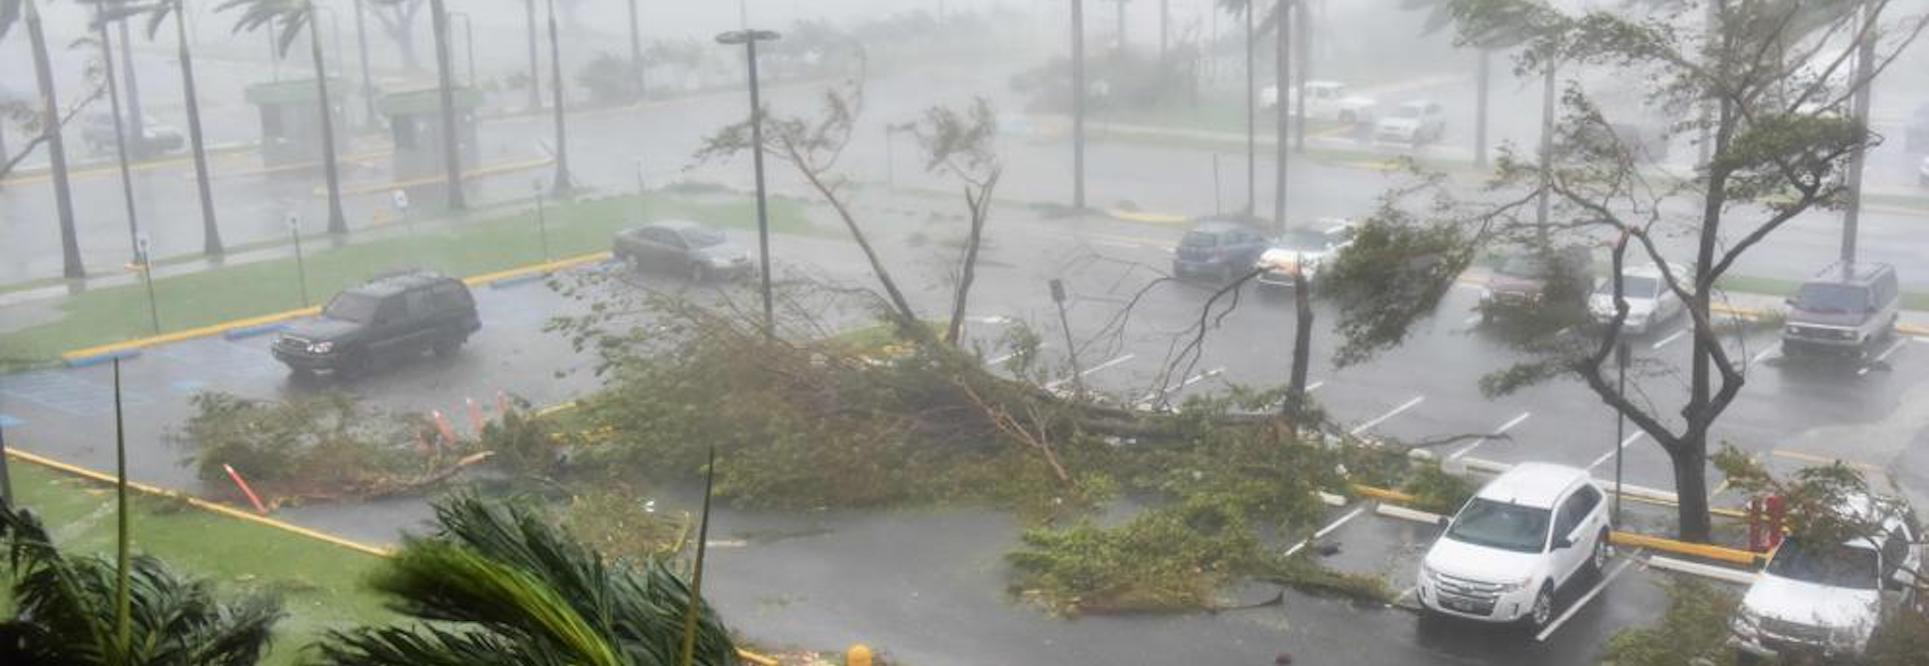 Puerto Rico: destroyed